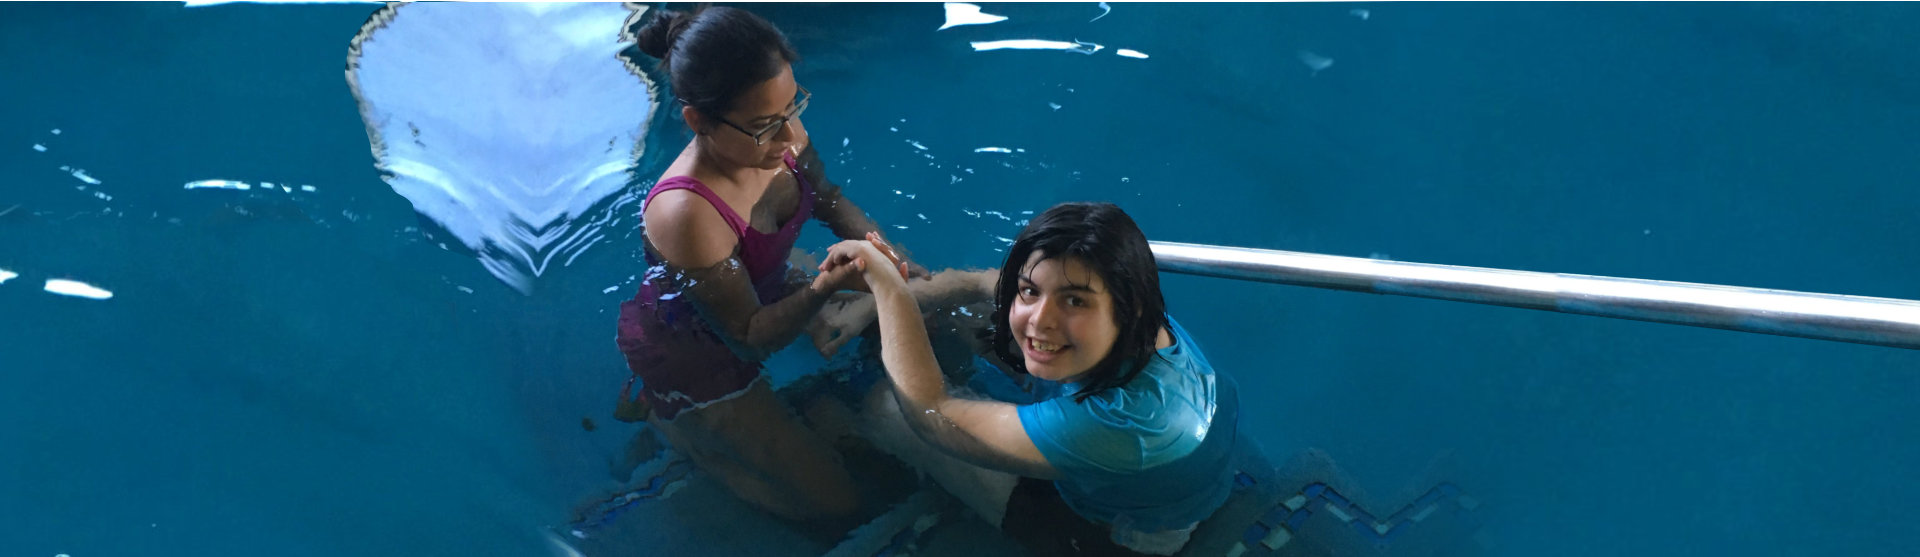 woman teaching a young girl to swim